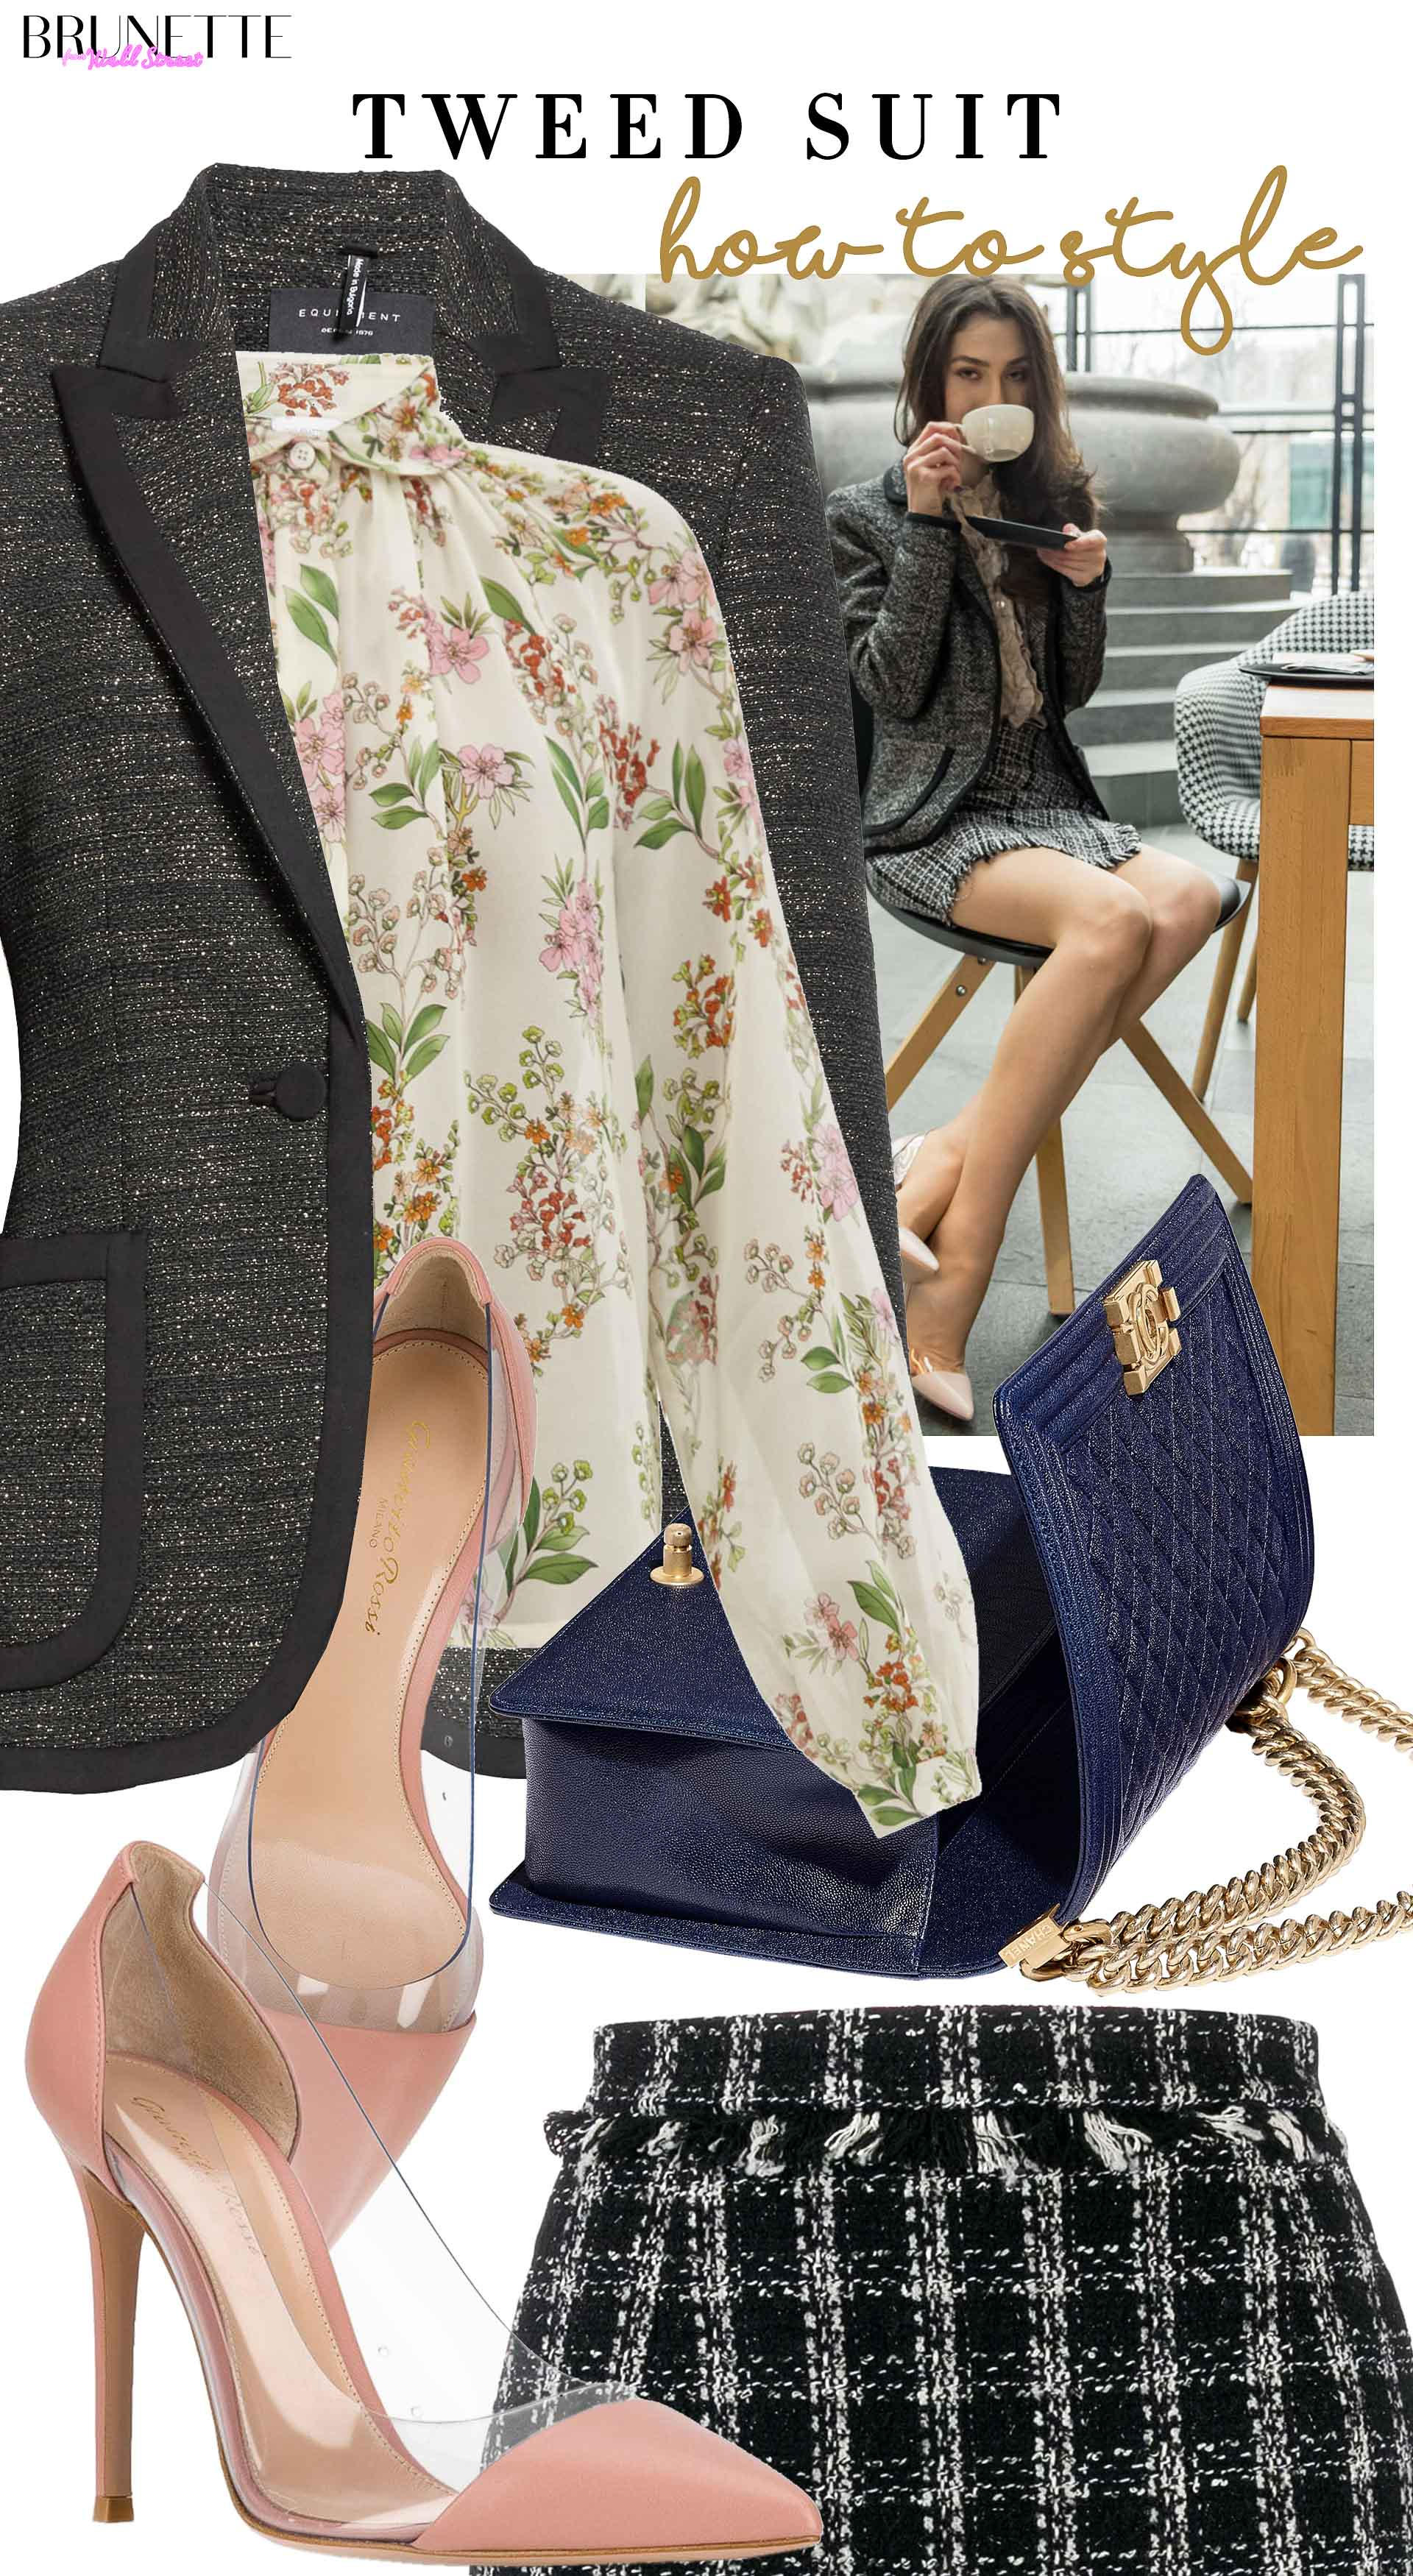 Brunette from Wall Street how to style tweed jacket tweed skirt Chanel bag Gianvito Rossi plexi pumps for afternoon tea party date